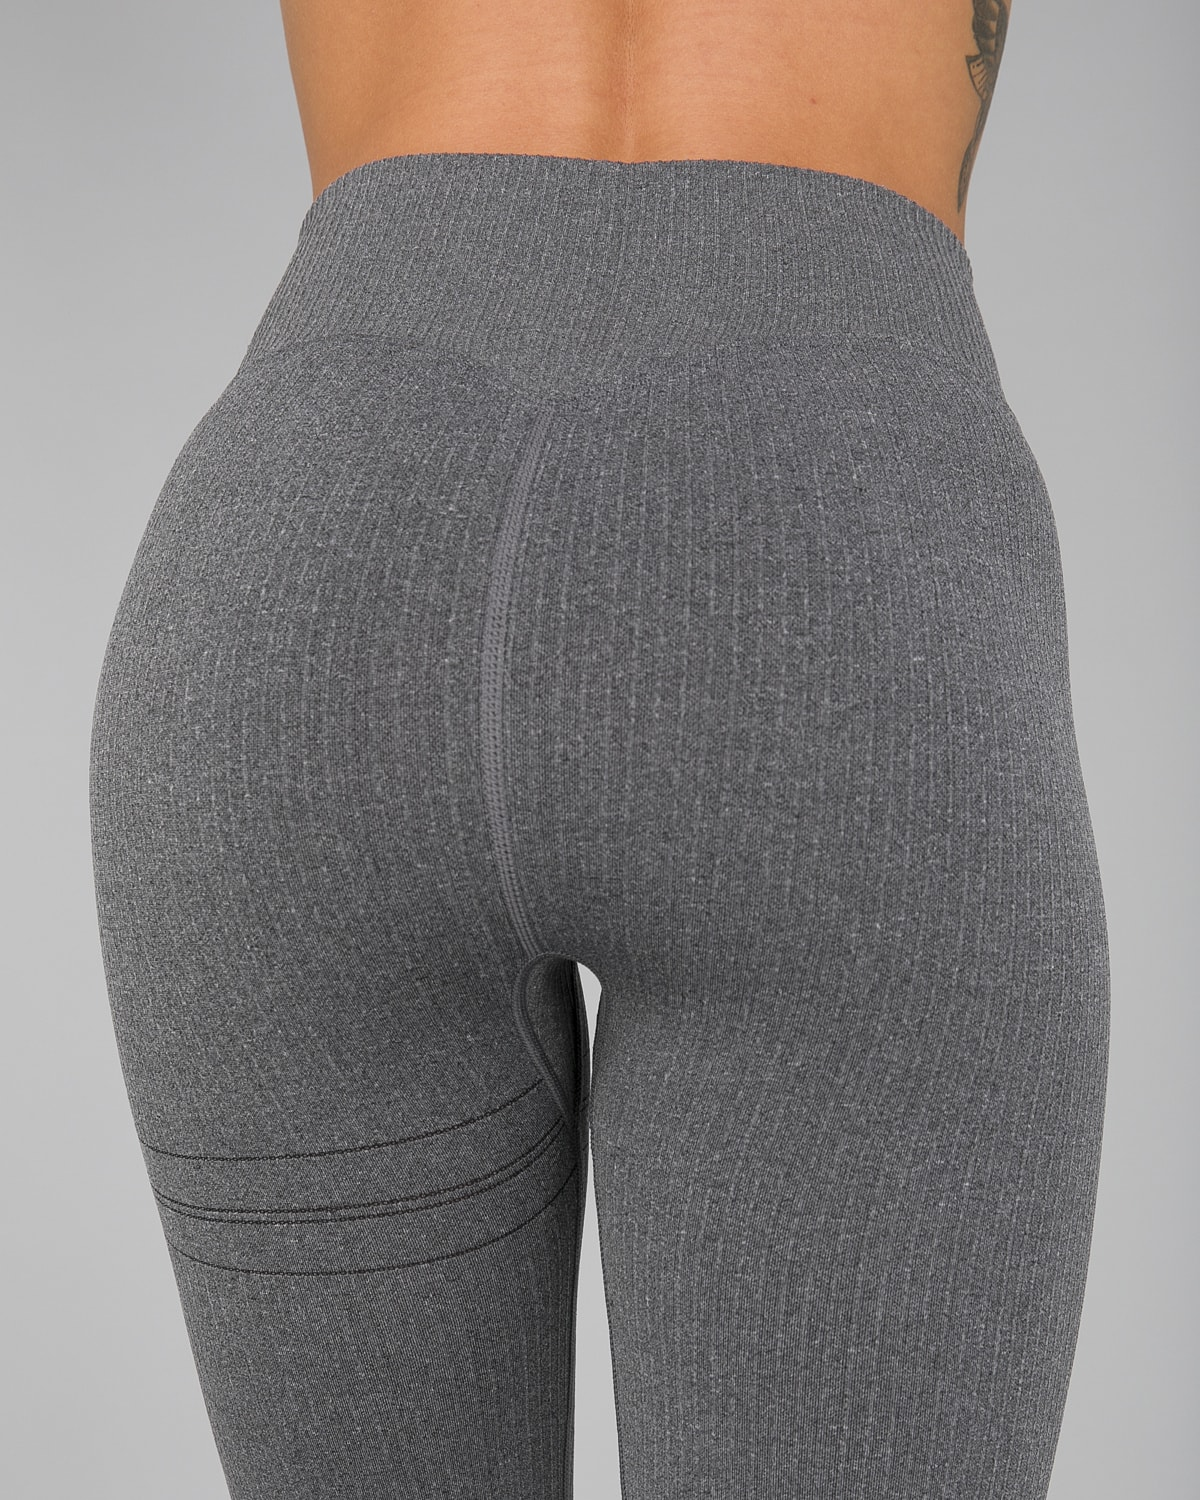 Aim'n Grey Ribbed Seamless Tights11